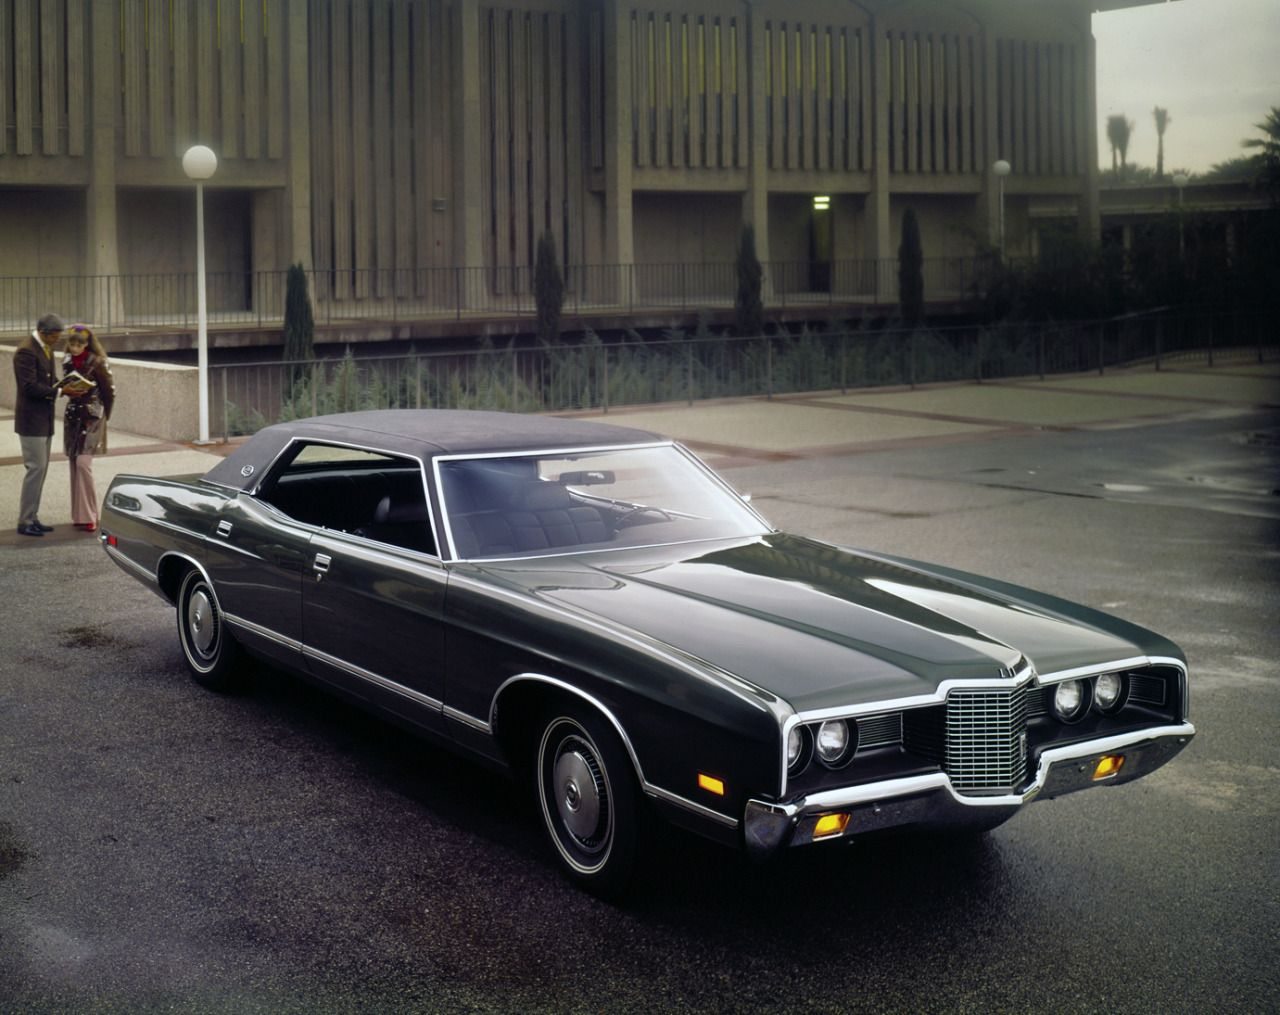 Kahblog 1972 Ford Ltd Brougham With Images Ford Ltd Ford